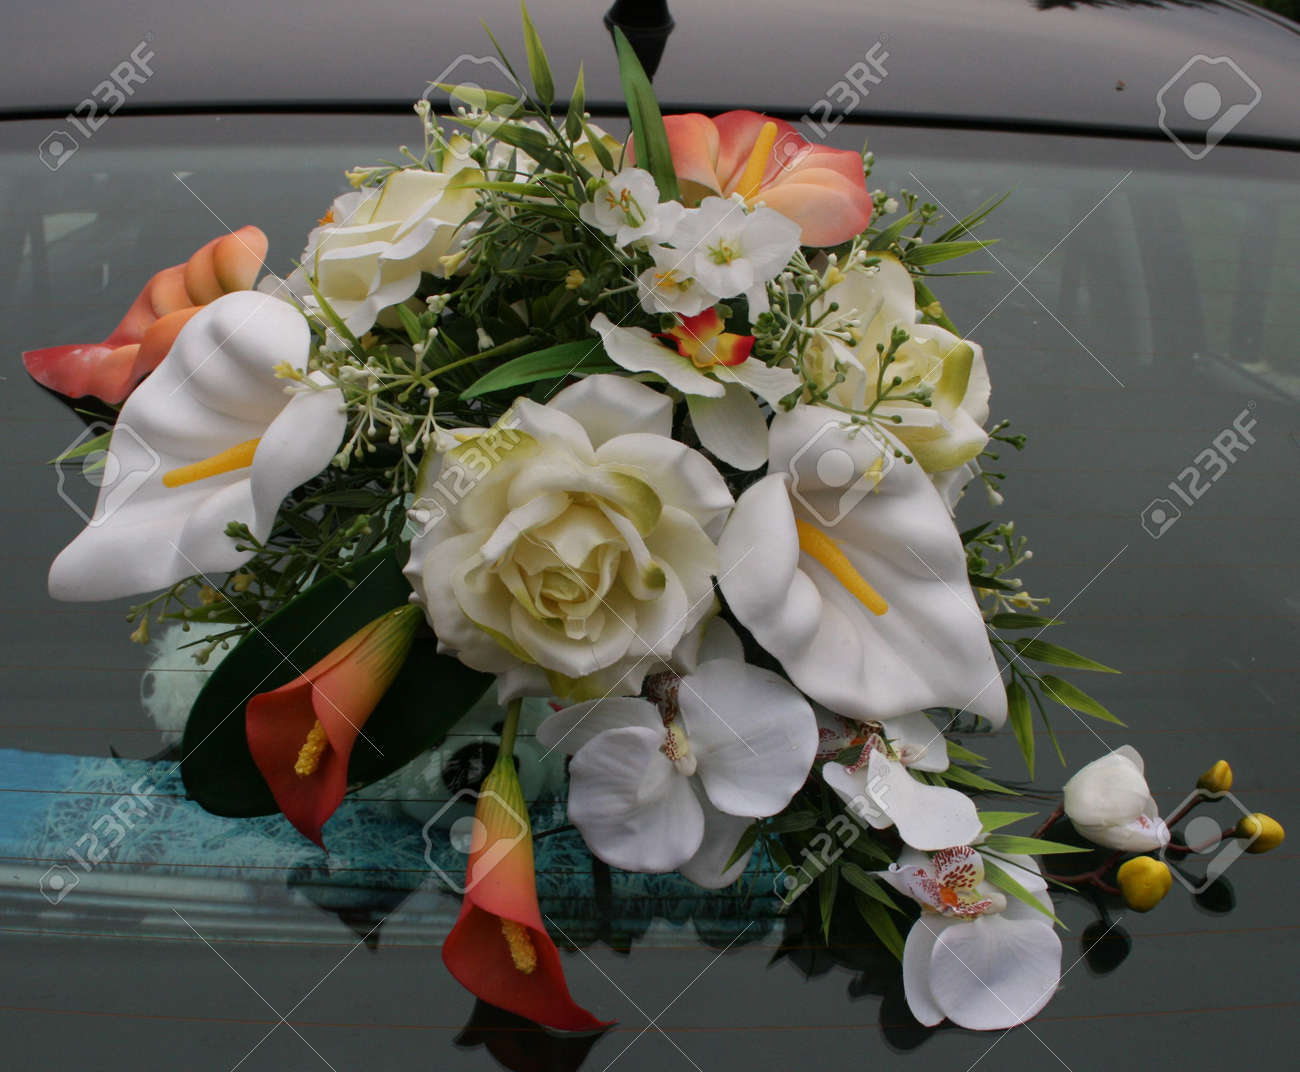 Wedding Car Decorations With Flower Bouquet Stock Photo, Picture And ...